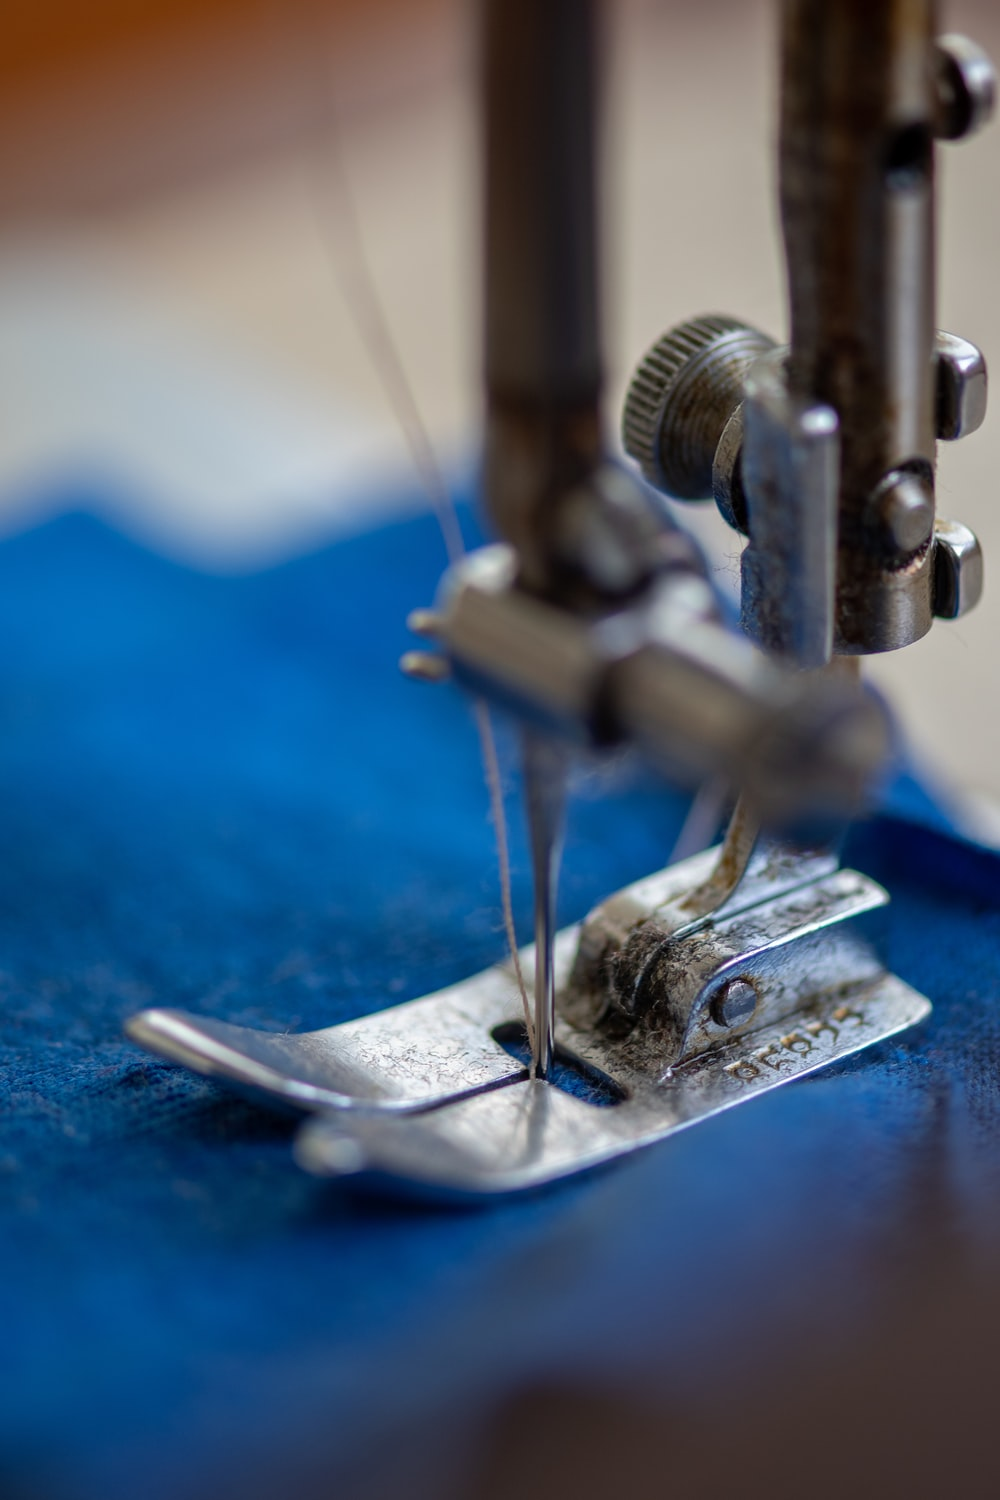 blue and silver sewing machine